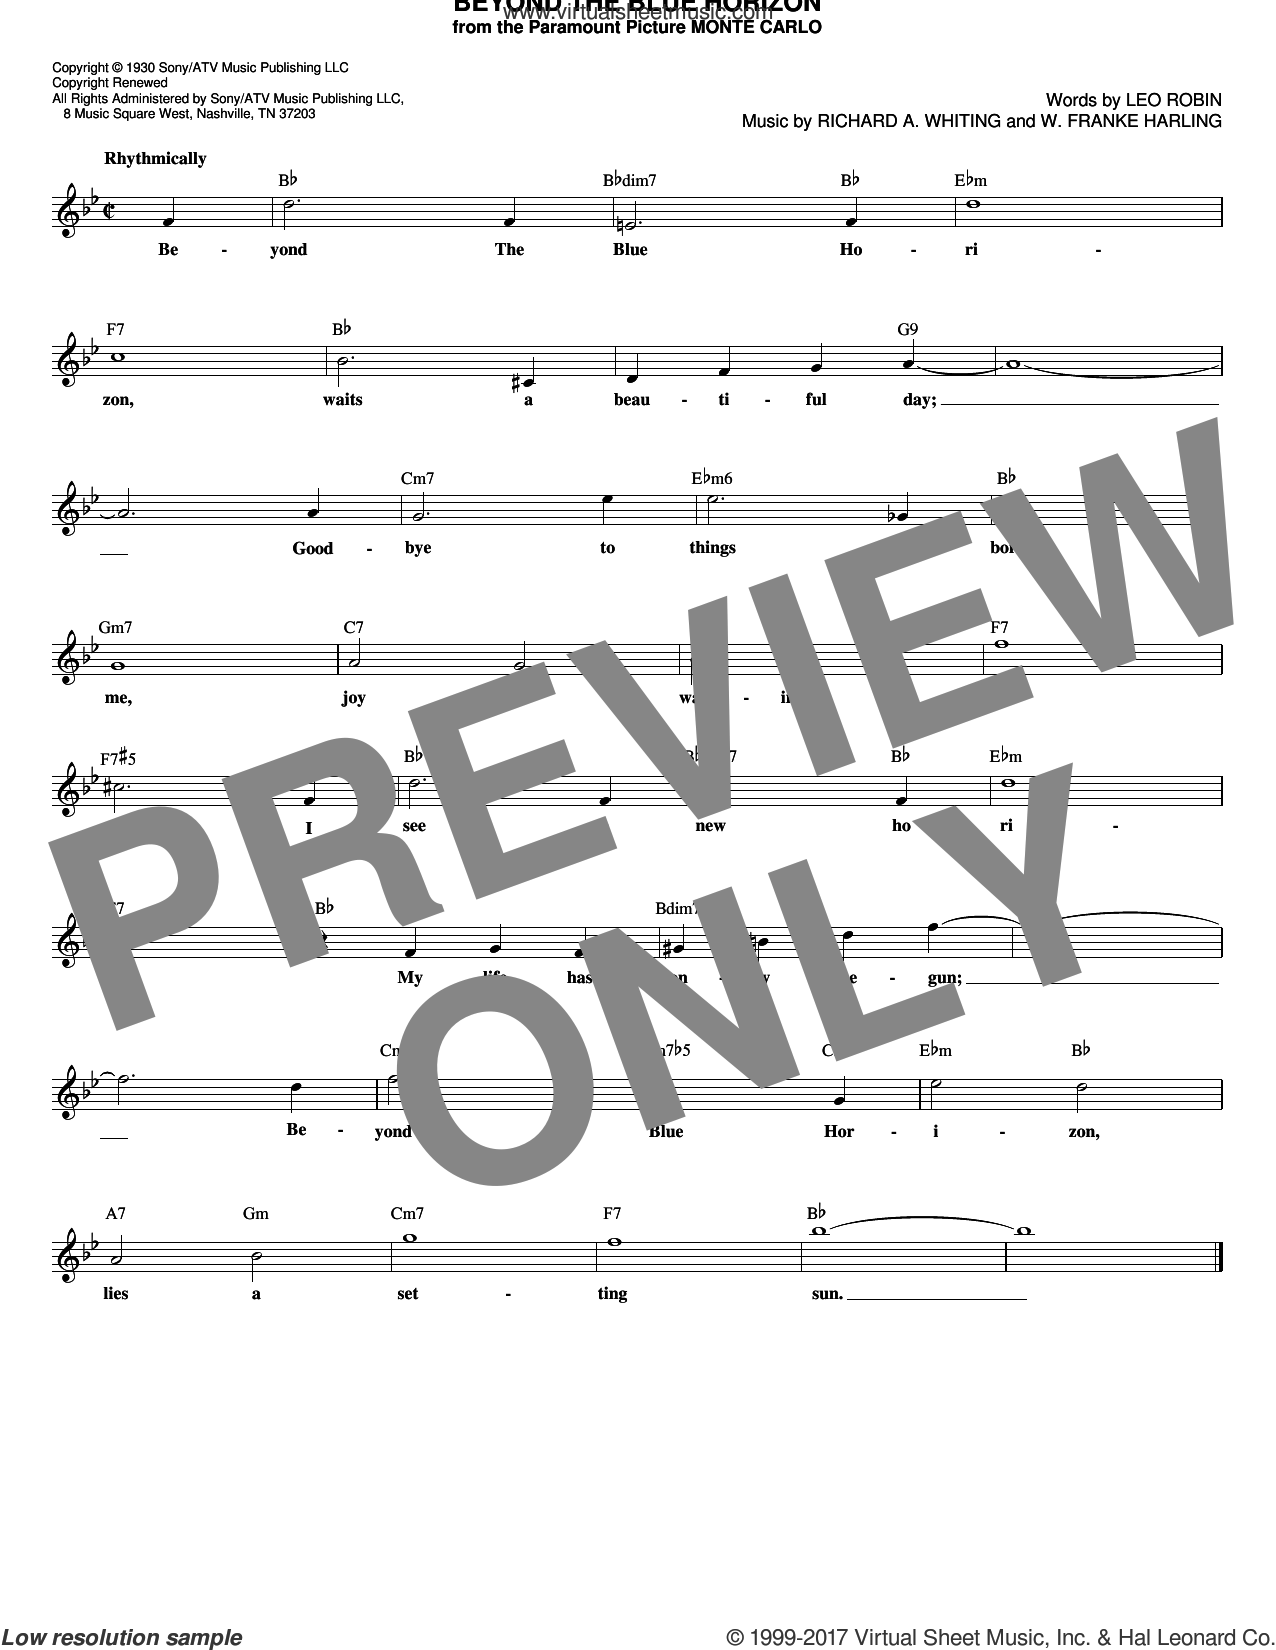 Beyond The Blue Horizon sheet music for voice and other instruments (fake book) by W. Franke Harling, Leo Robin and Richard A. Whiting. Score Image Preview.